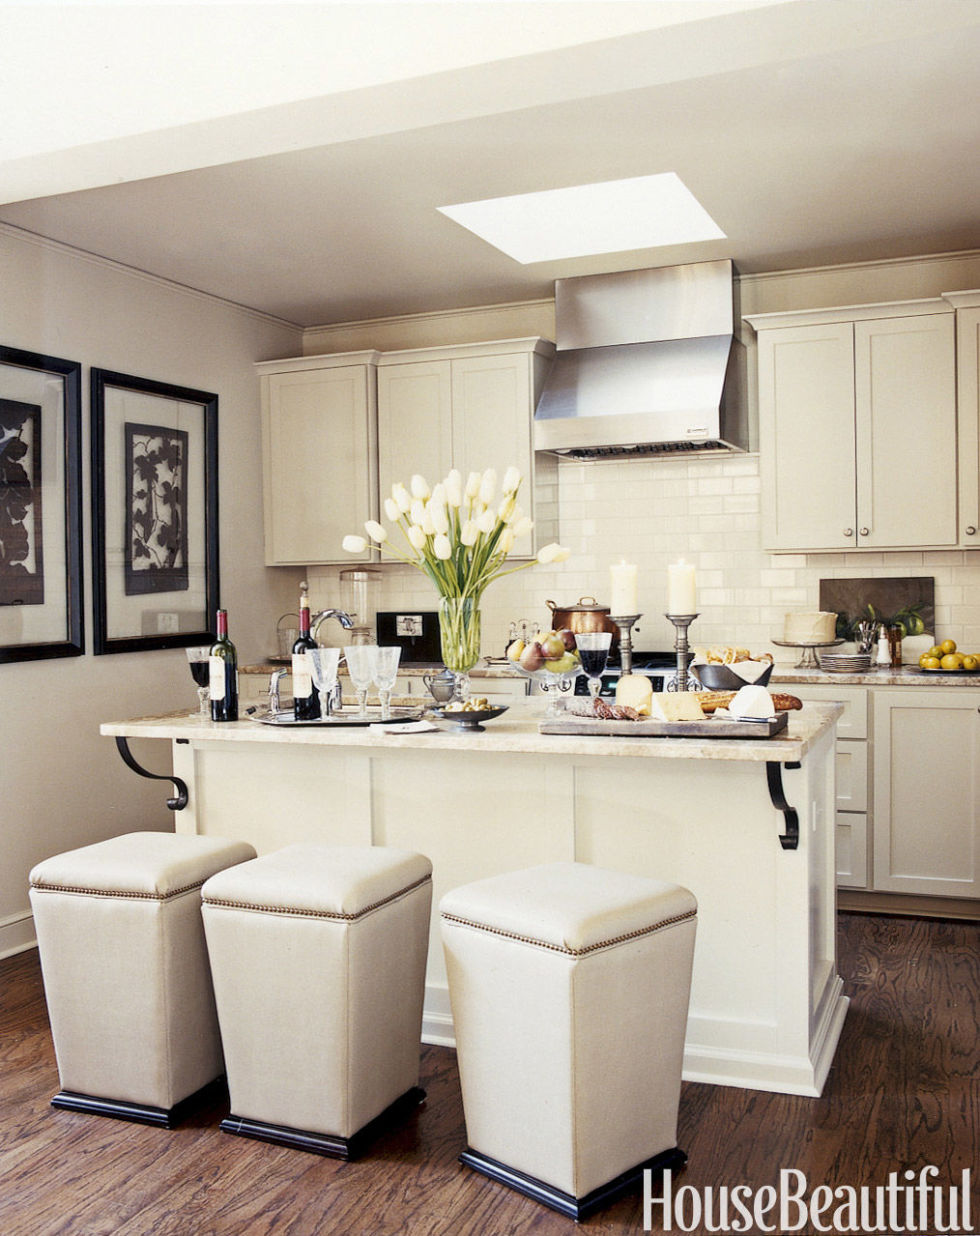 small kitchen designs 25 best small kitchen design ideas - decorating solutions for small kitchens RDRSSCO